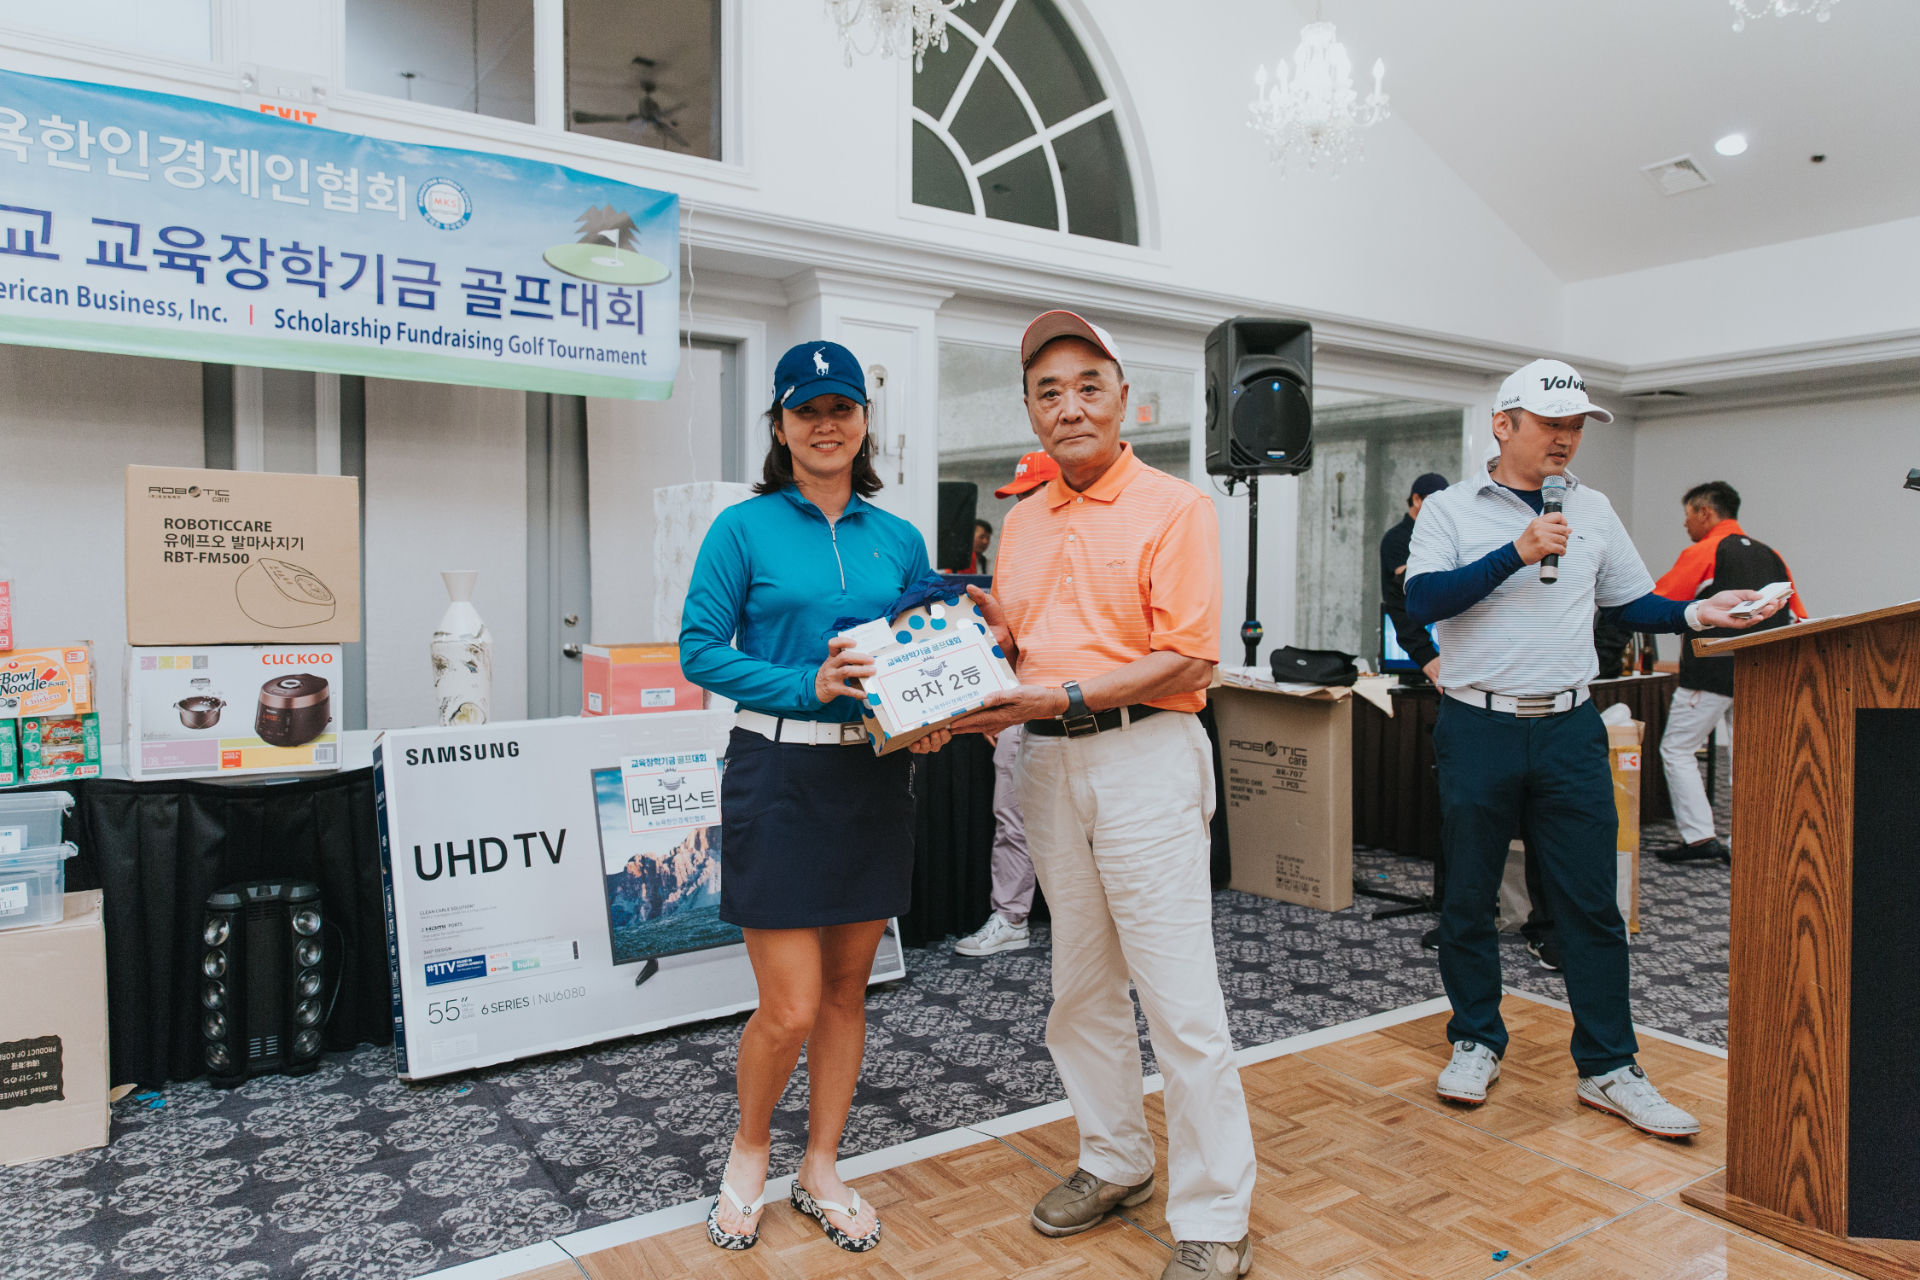 https://nykbi.com/new/wp-content/uploads/2019/07/190619-Scholarship-Fundraising-Golf-Tournament-050.jpg